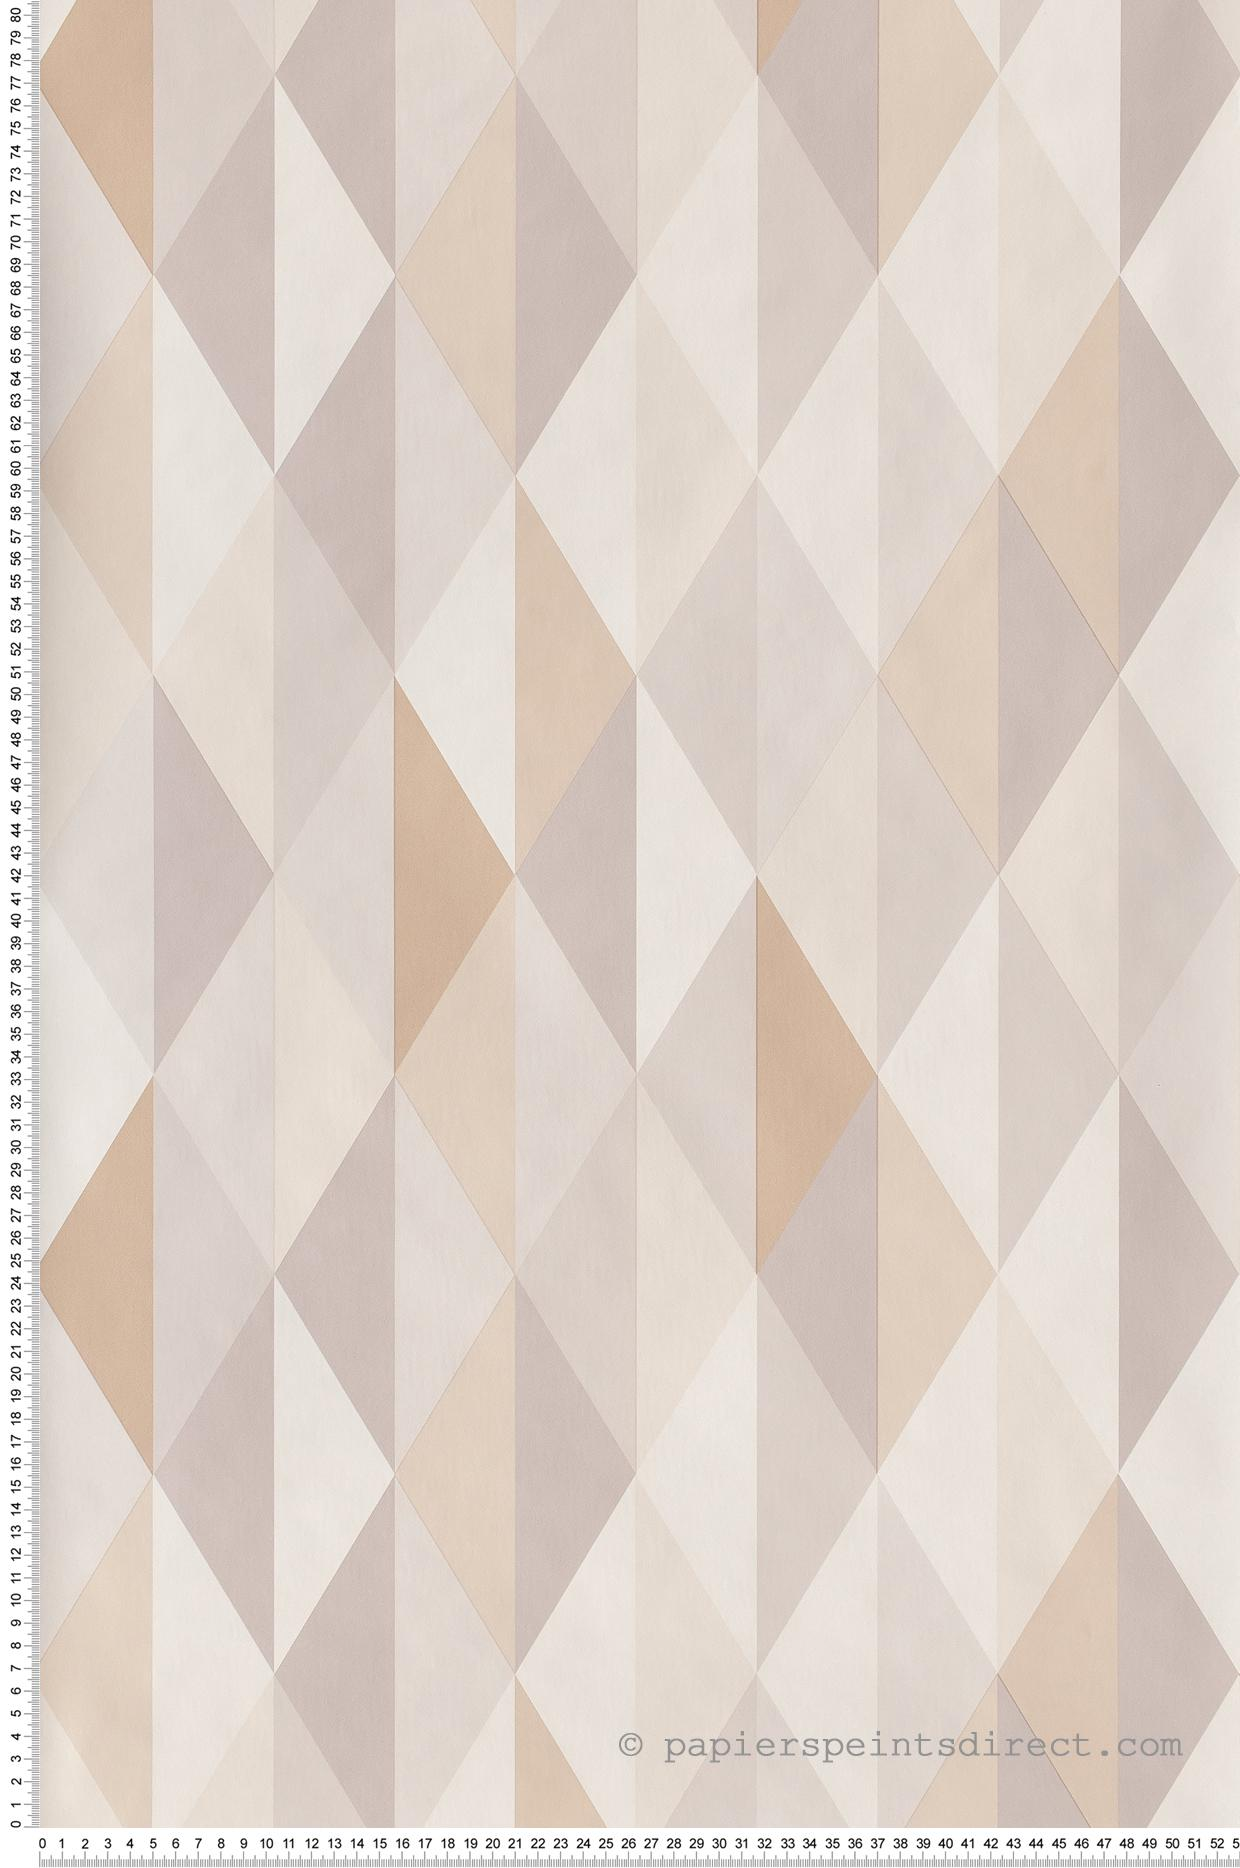 Papier peint Diamond gris beige - Spaces de Casélio | Réf. SPA100081015